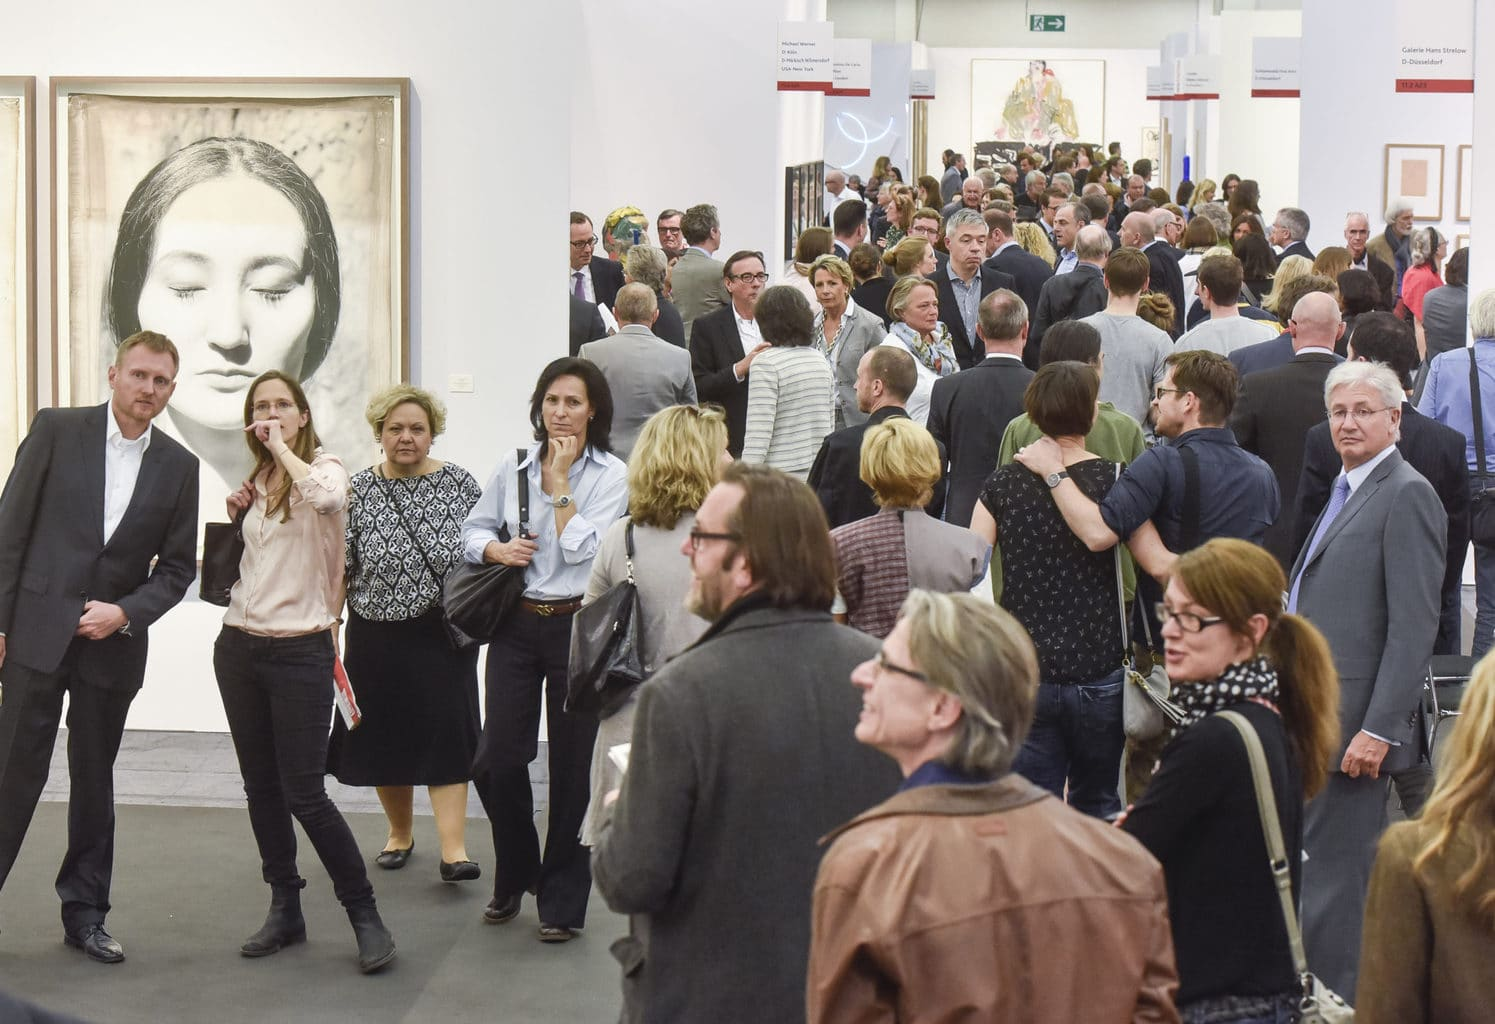 De kunstbeuers Art Cologne vindt plaats in Keulen eind november